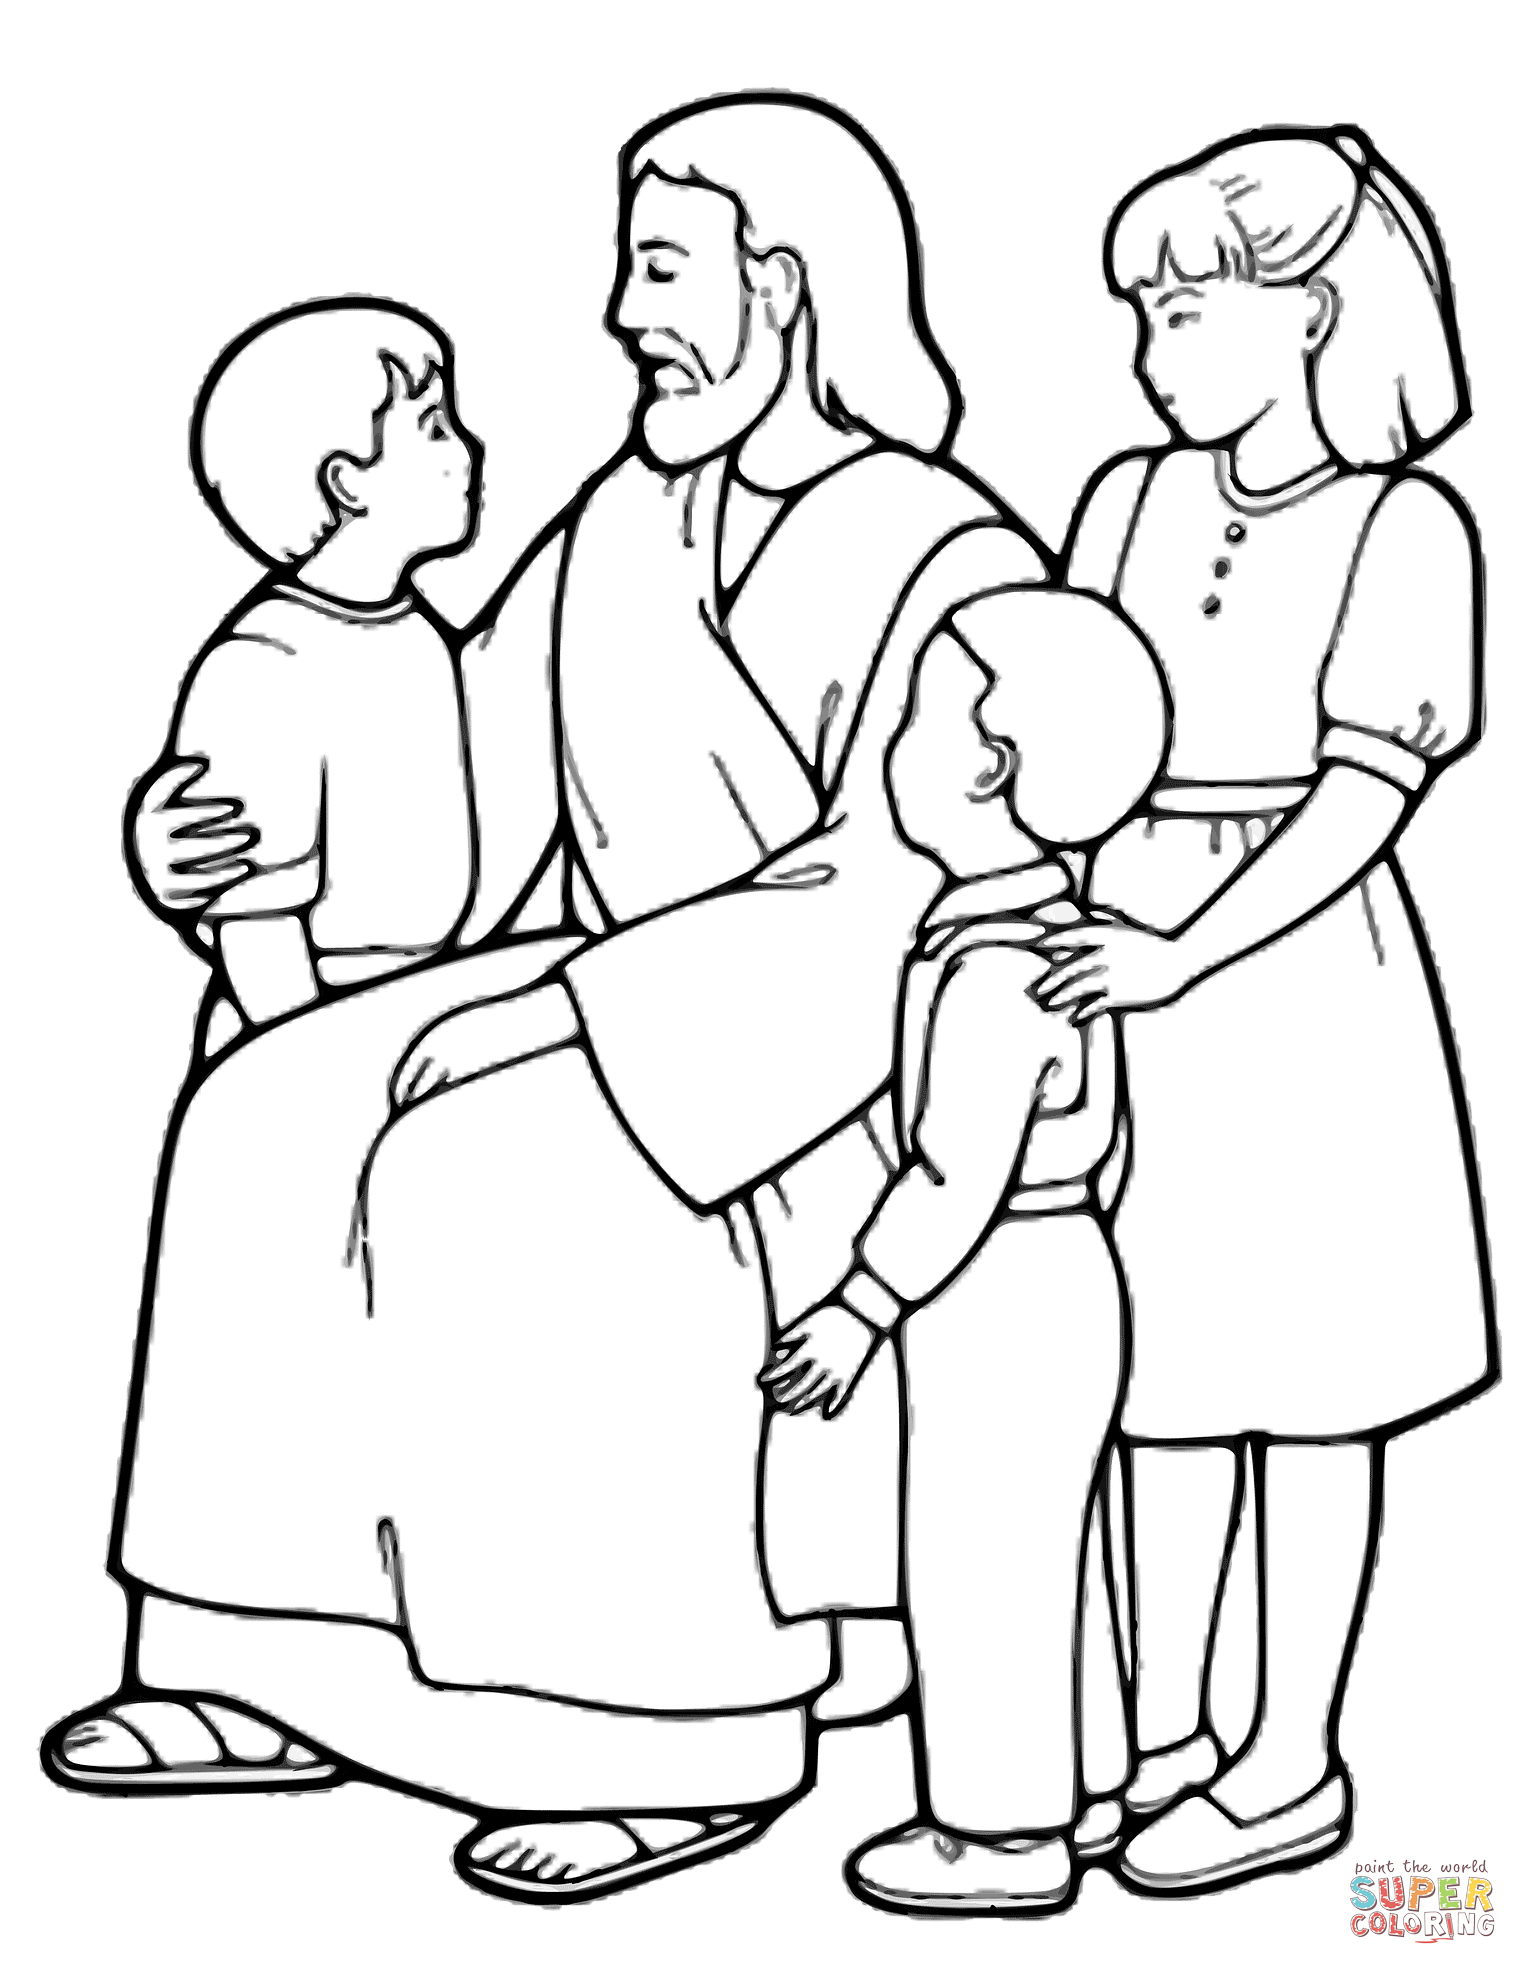 The Little Children And Jesus Coloring Page | Free Printable - Free Printable Jesus Coloring Pages